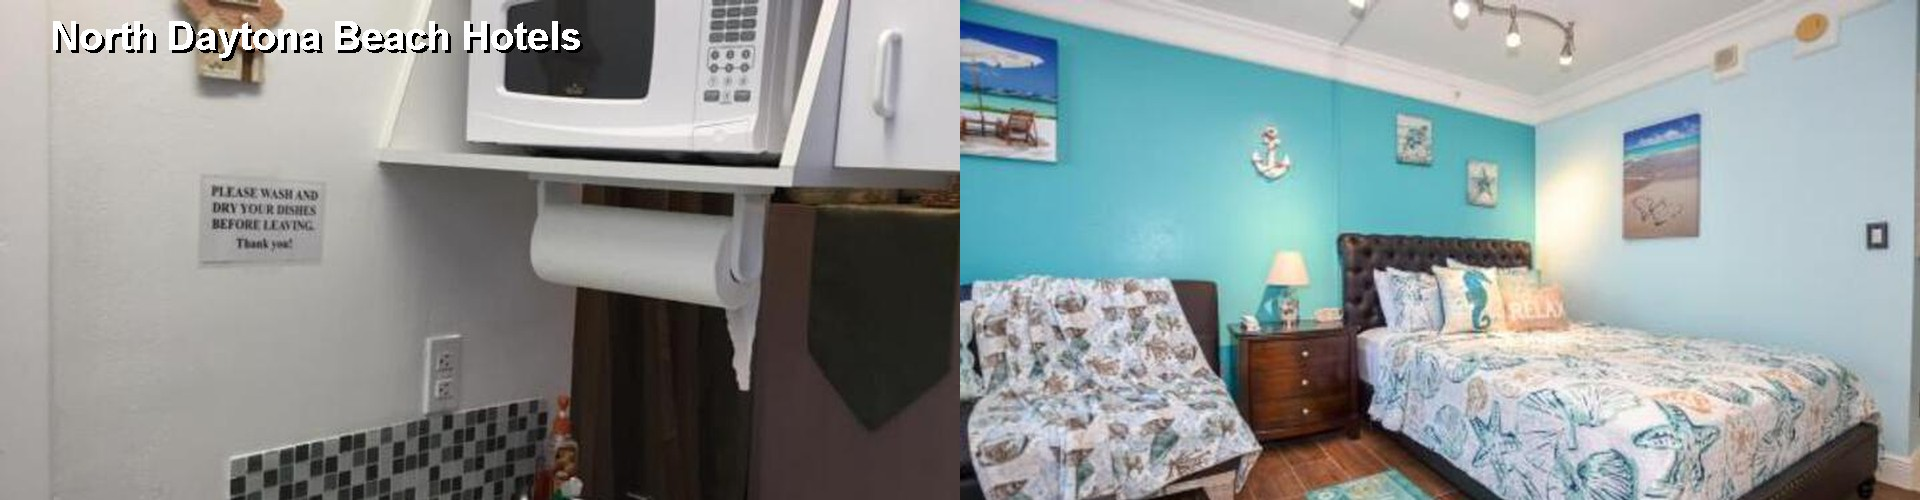 5 Best Hotels near North Daytona Beach